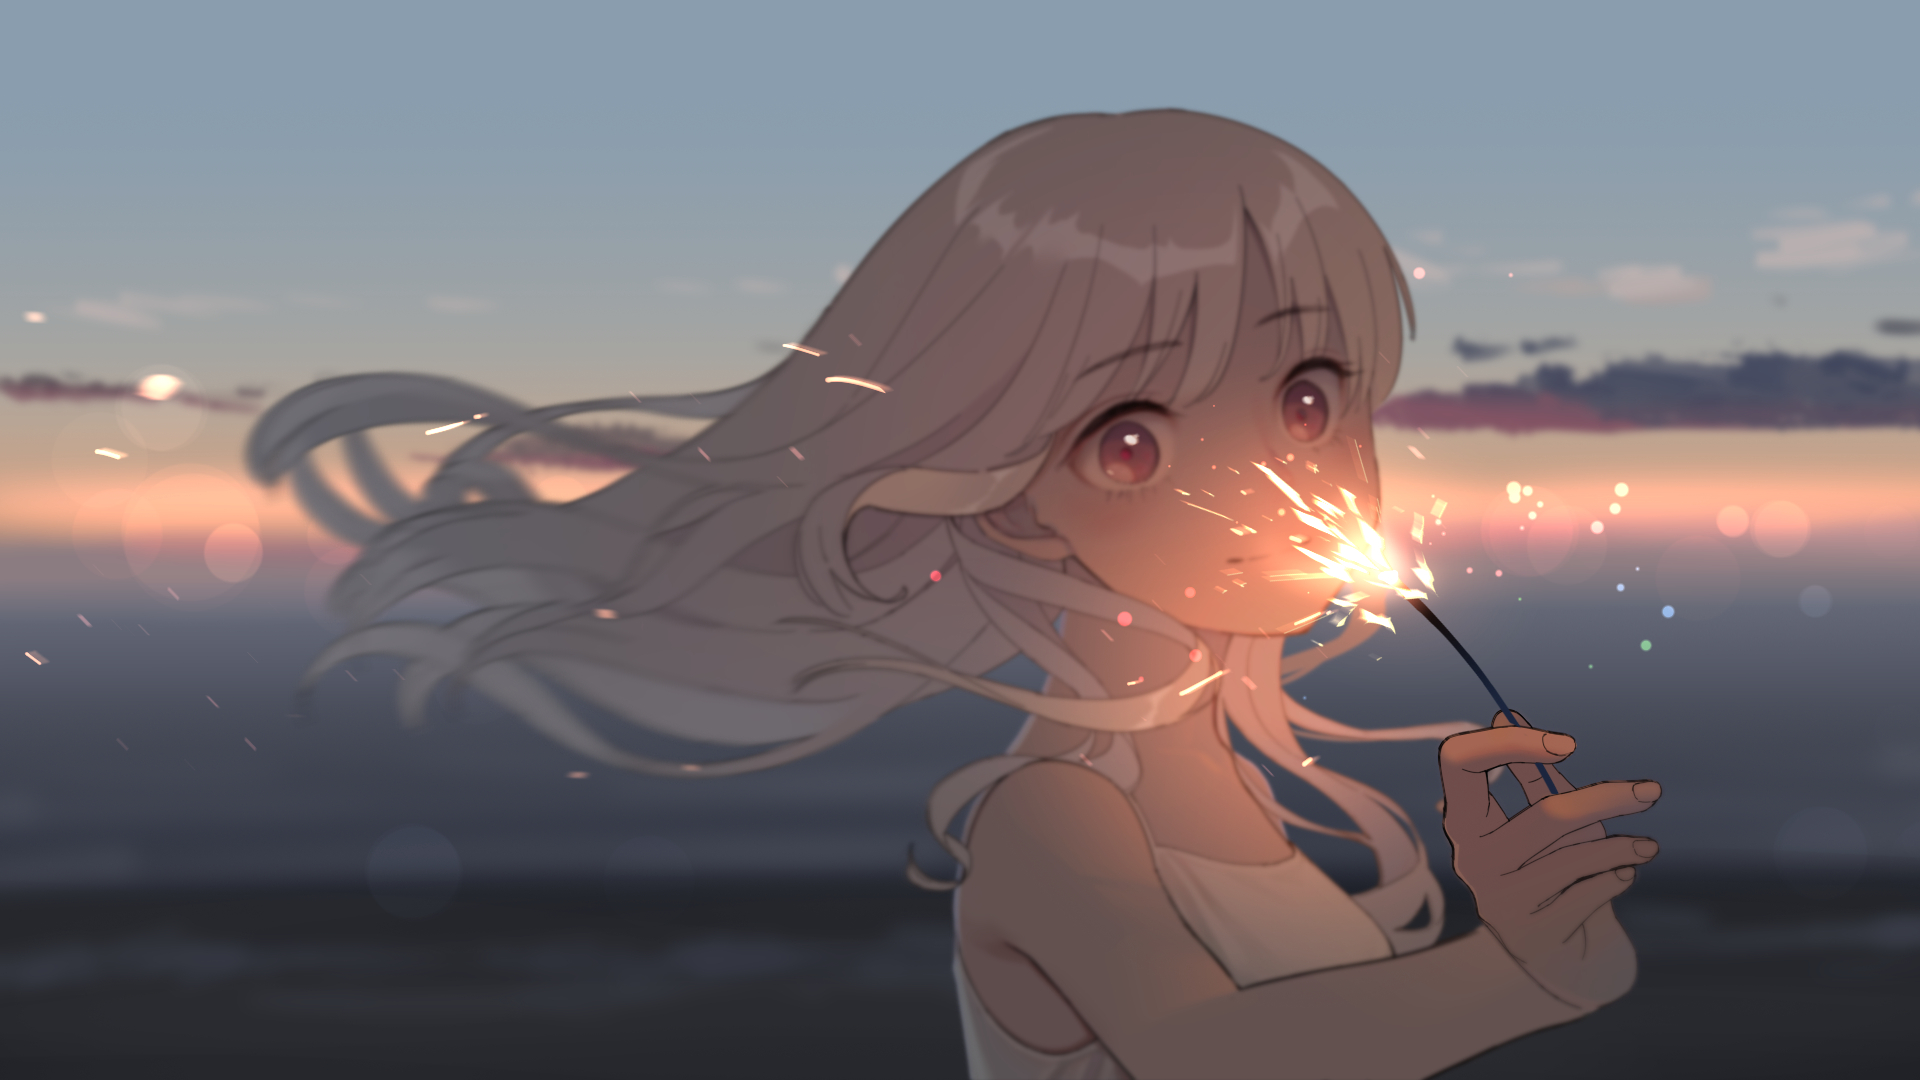 Anime Anime Girls Blonde Long Hair Sunset Clouds Sky Beach Red Eyes Sparklers Looking At Viewer 1920x1080